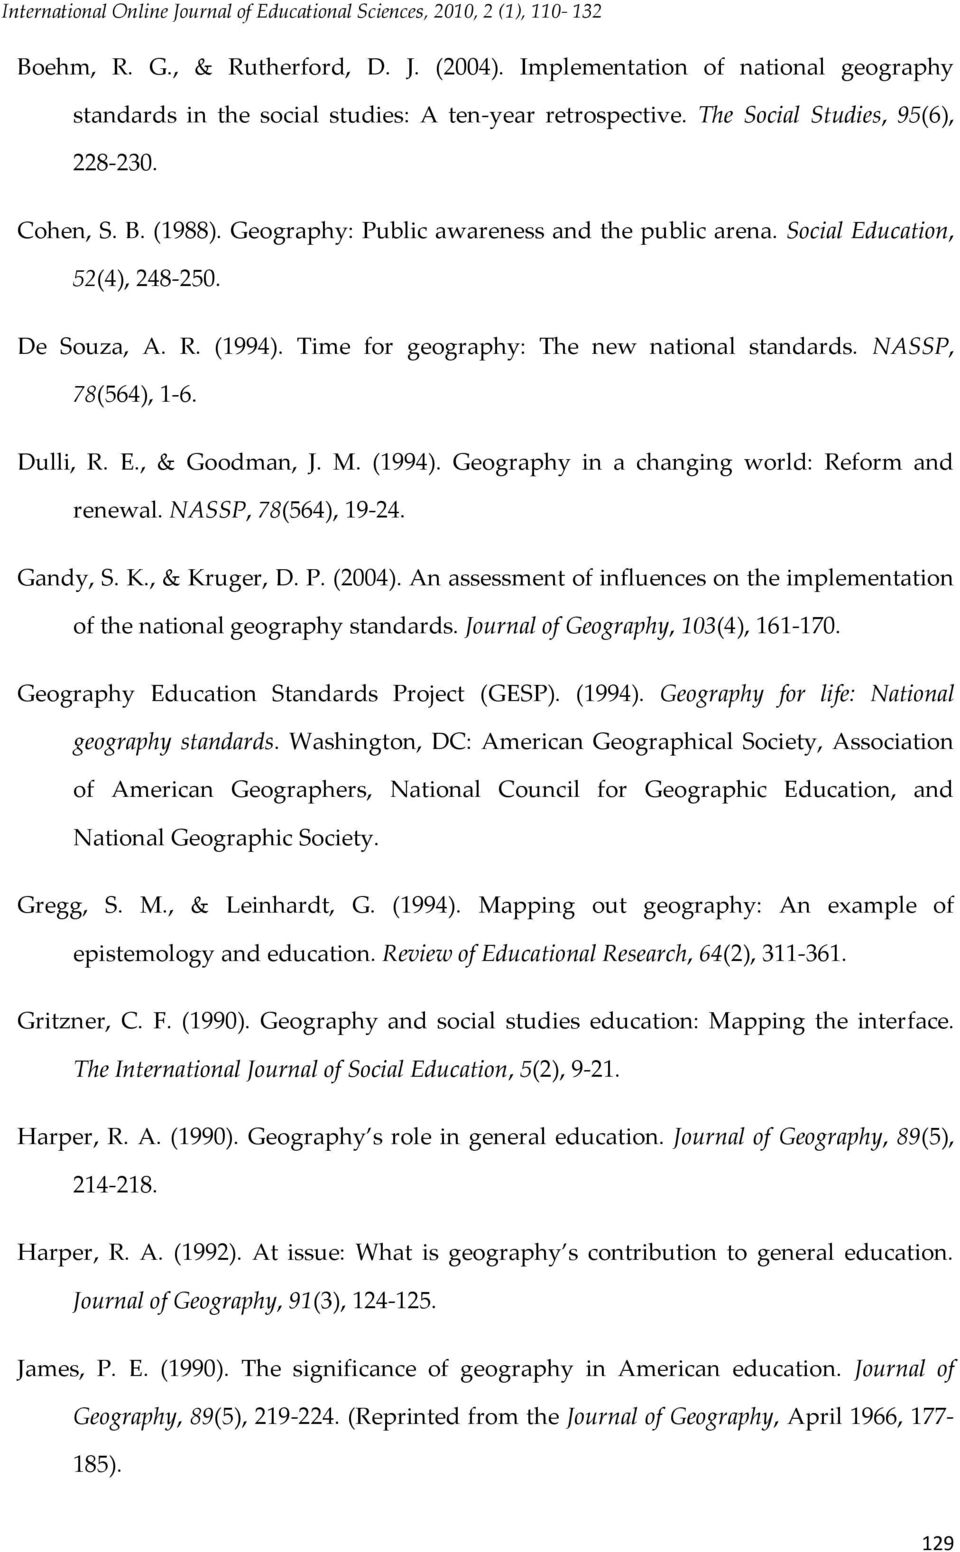 Geography: Public awareness and the public arena. Social Education, 52(4), 248-250. De Souza, A. R. (1994). Time for geography: The new national standards. NASSP, 78(564), 1-6. Dulli, R. E., & Goodman, J.